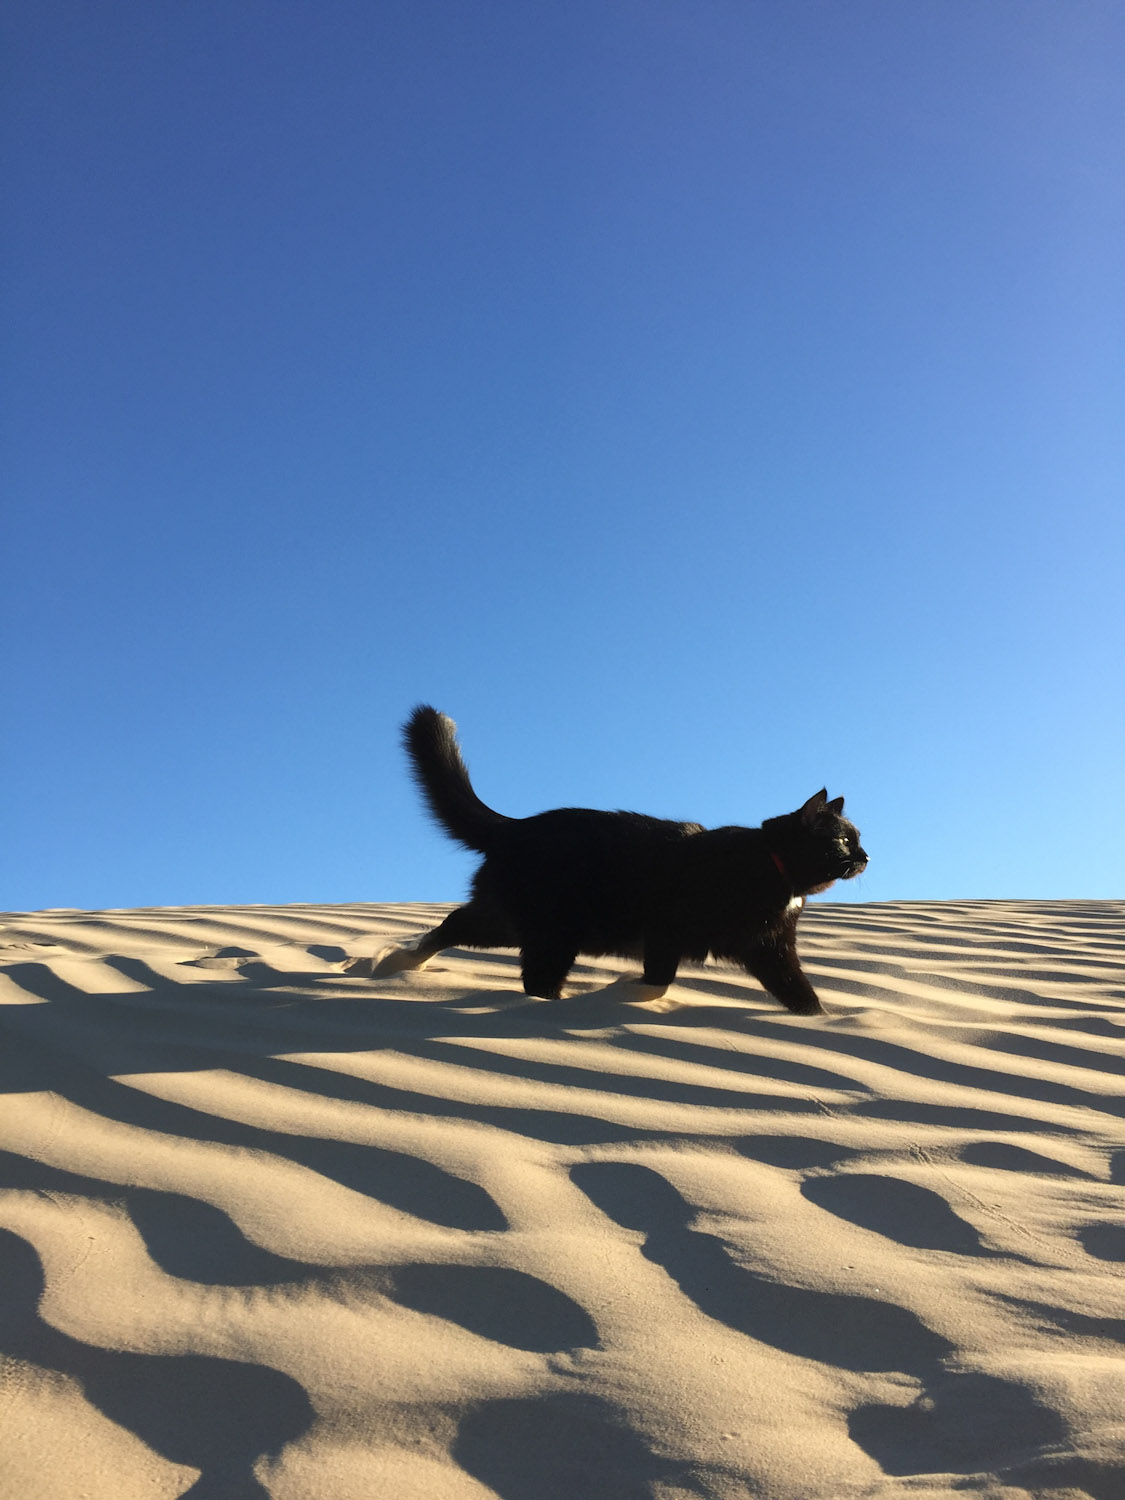 Millie walks through desert